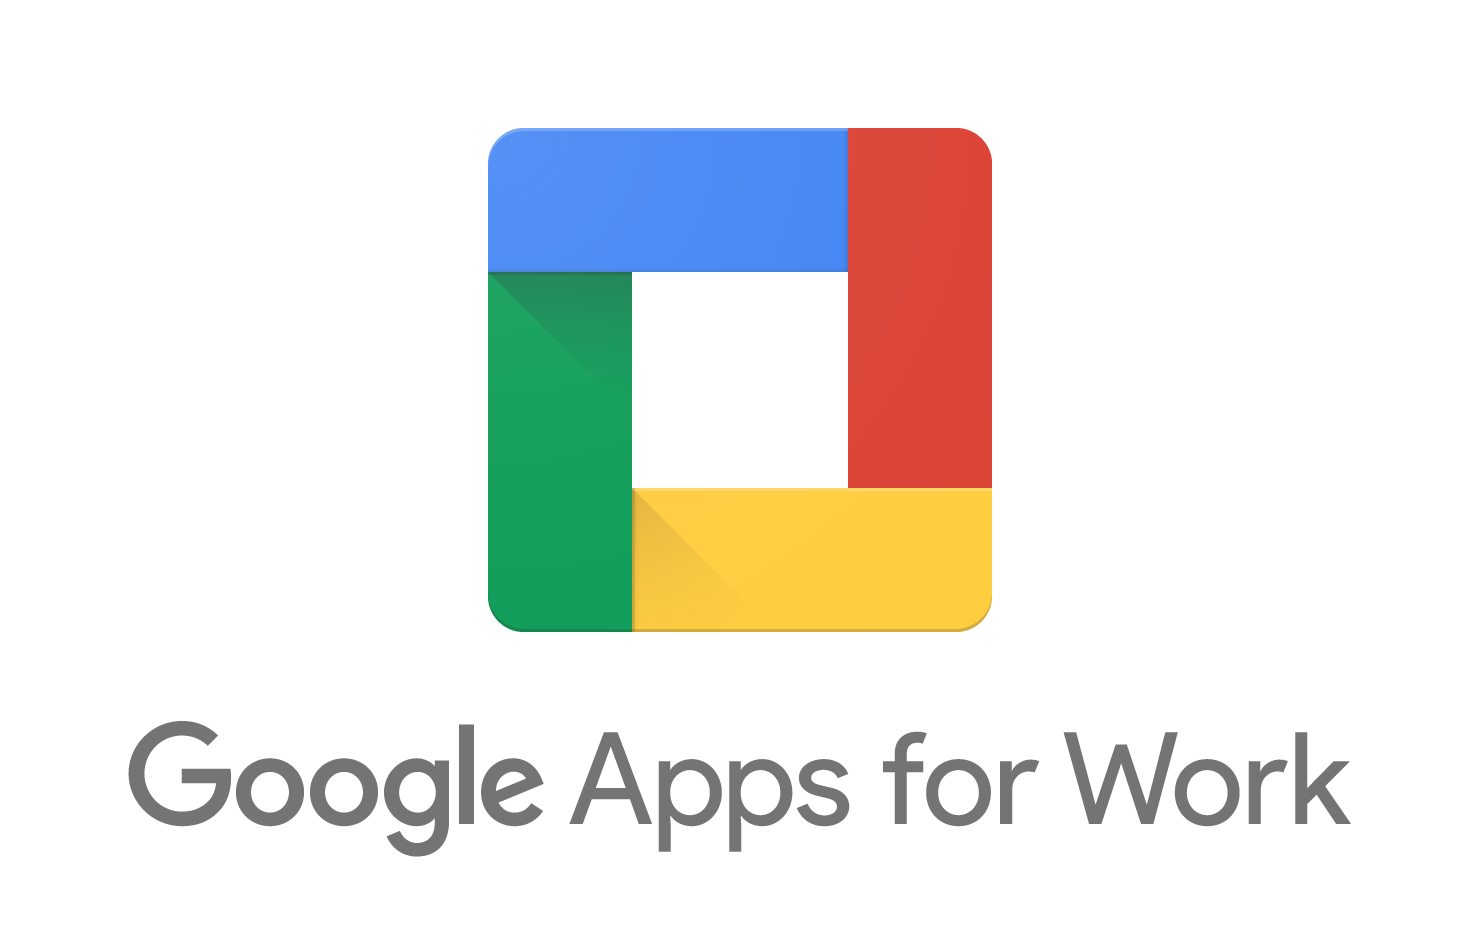 google-apps-for-work-premier-logo.png